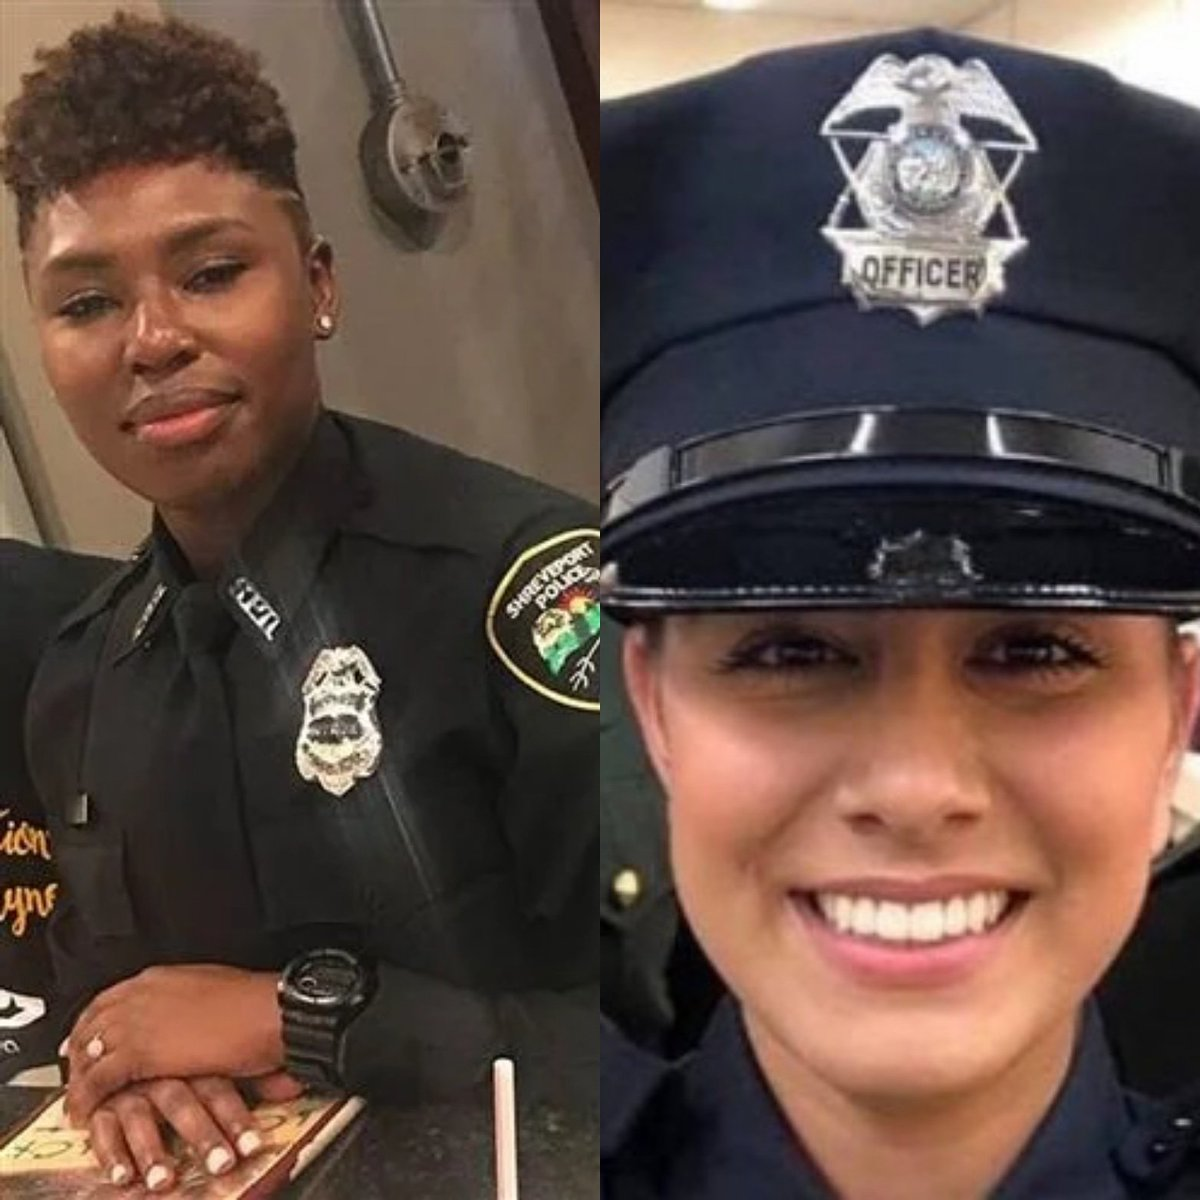 Today, our thoughts and prayers are with the family and friends of Shreveport Louisiana Police Officer, Chateri Payne and Davis California Police Officer, Natalie Corona who were both shot and killed earlier this week.  #GoneButNeverForgotten <br>http://pic.twitter.com/QB7IErrNhk